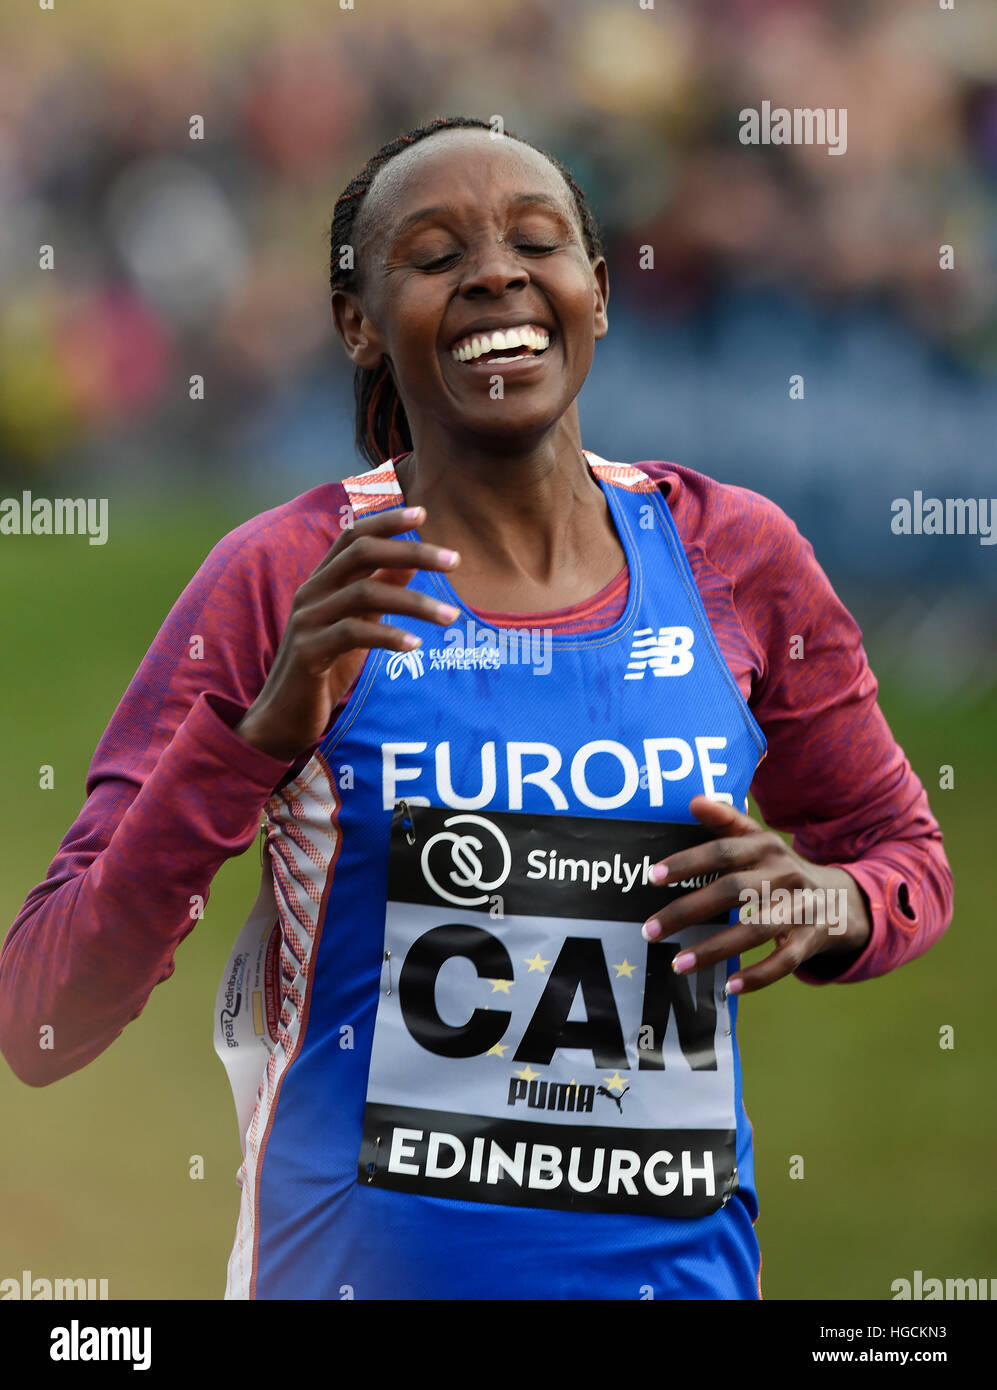 Europe's Yasemin Can wins the Women's 6k event during the 2017 Great Edinburgh International XCountry in - Stock Image